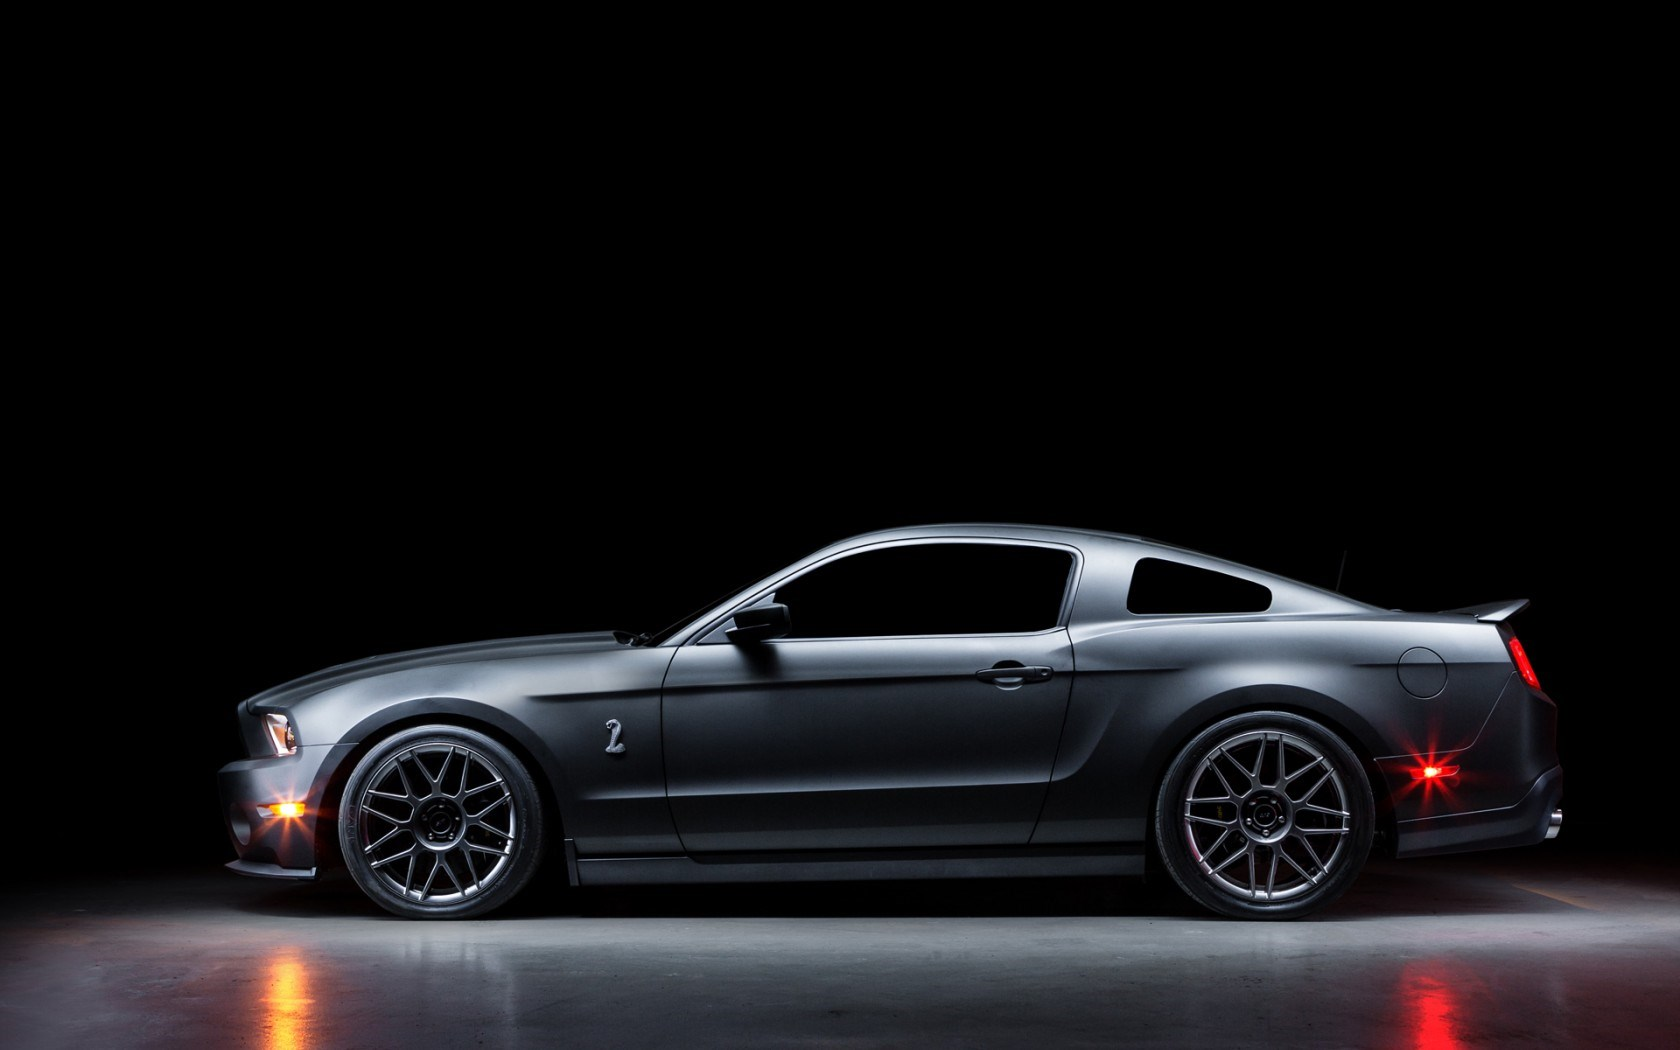 Ford Mustang Shelby GT500 Profile Car